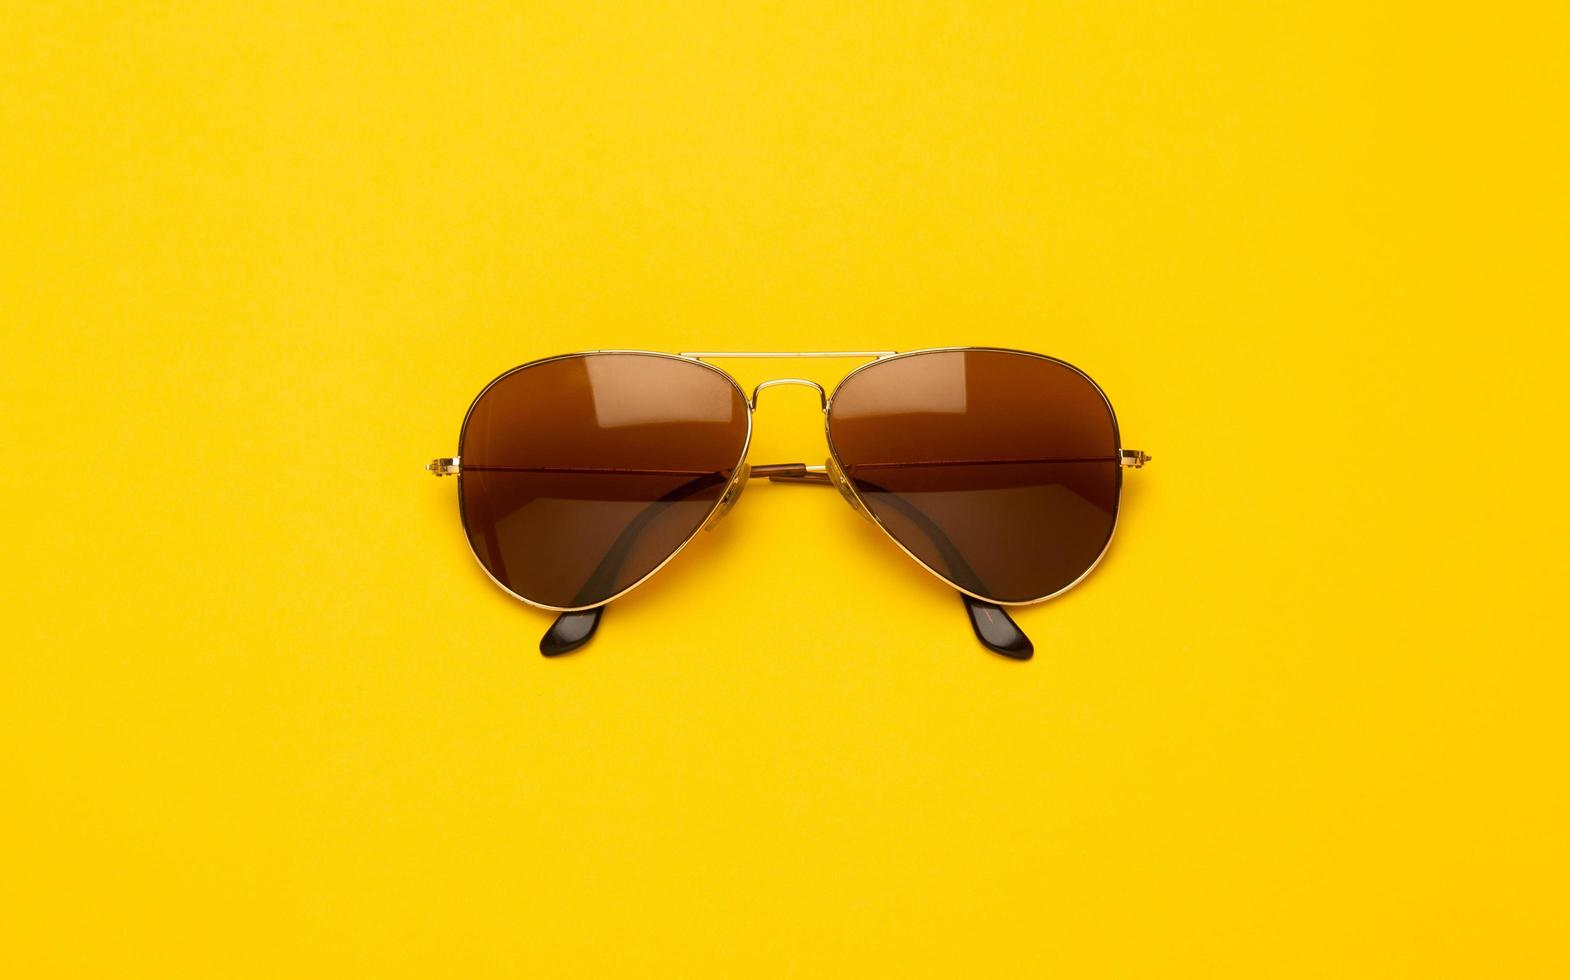 Brown sunglasses on yellow background photo